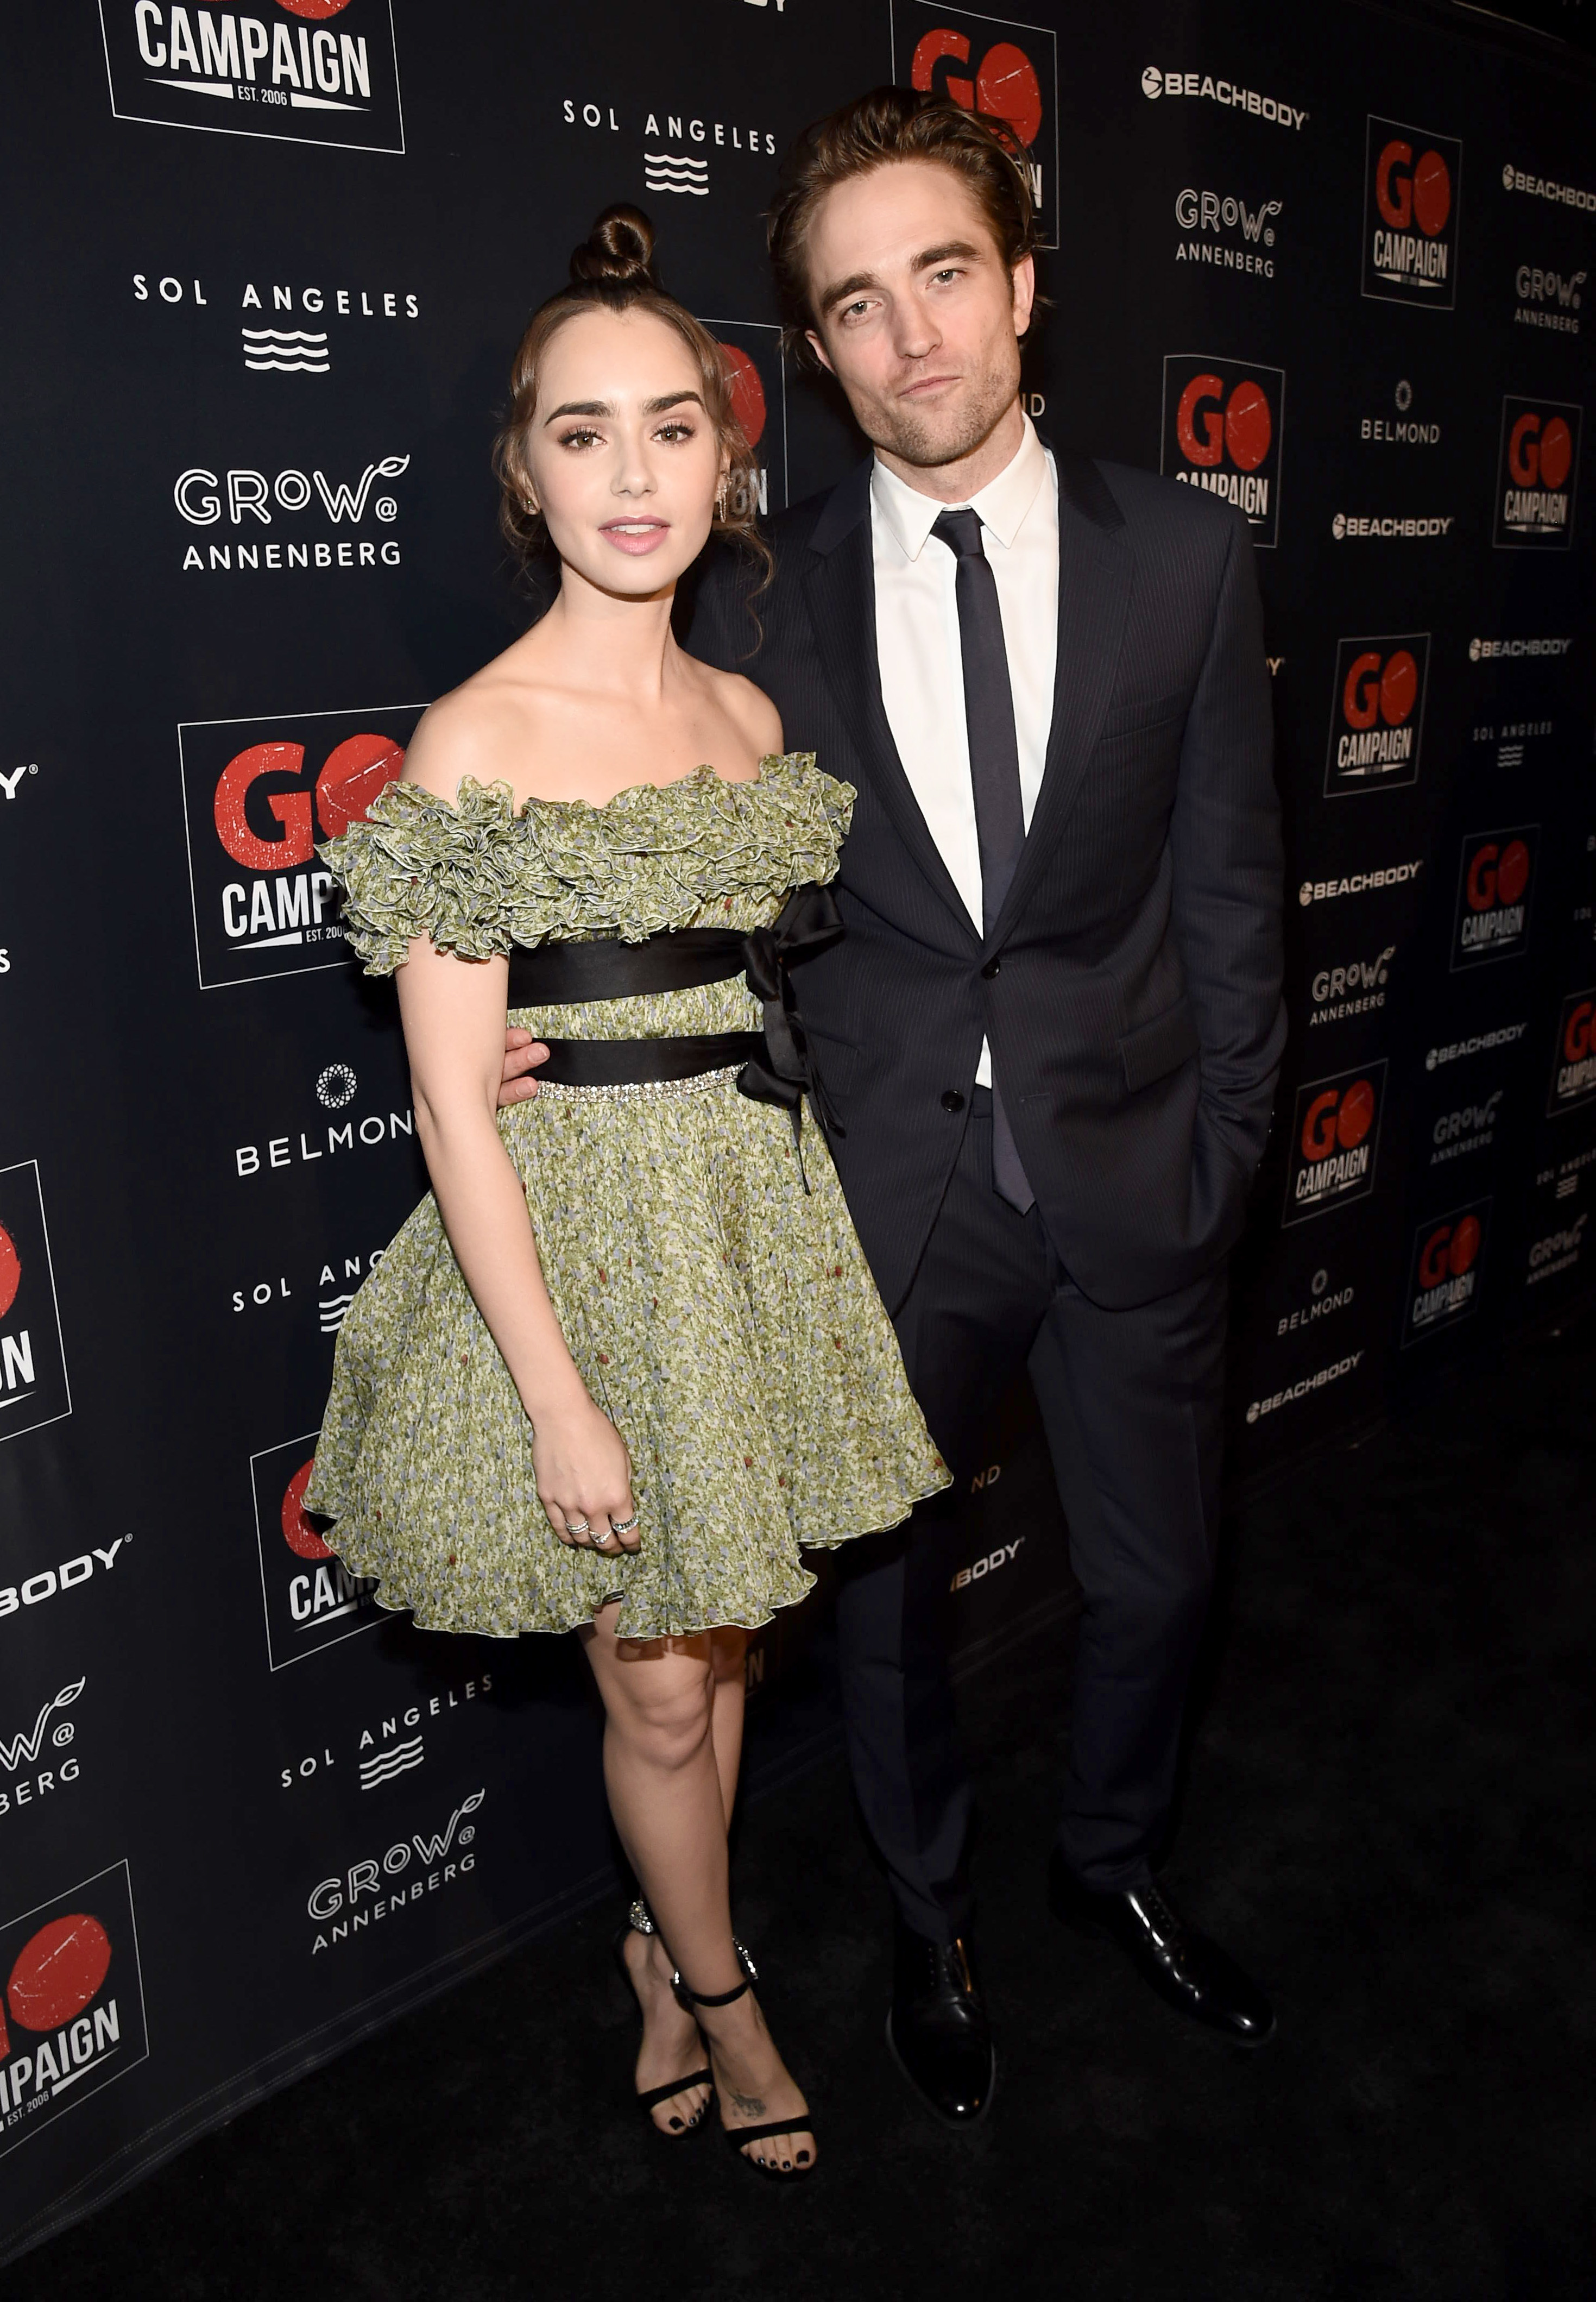 Lily Collins and Robert Pattinson attend the GO Campaign 2018 Gala in Los Angeles on Oct. 20, 2018.